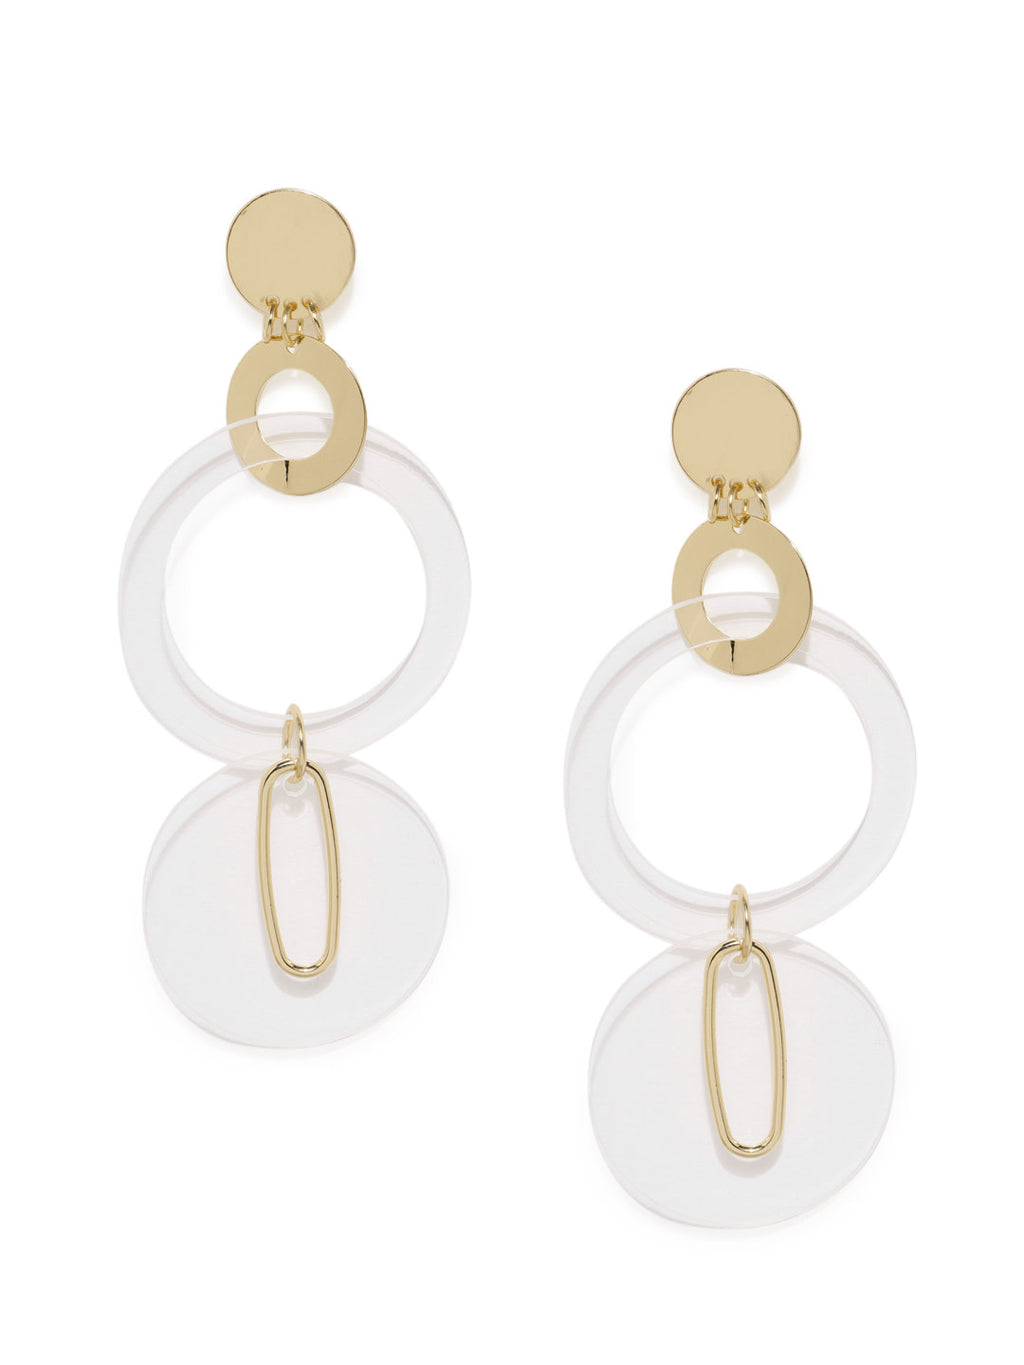 TRANSPARENT CIRCULAR DROP EARRINGS - chique boutique